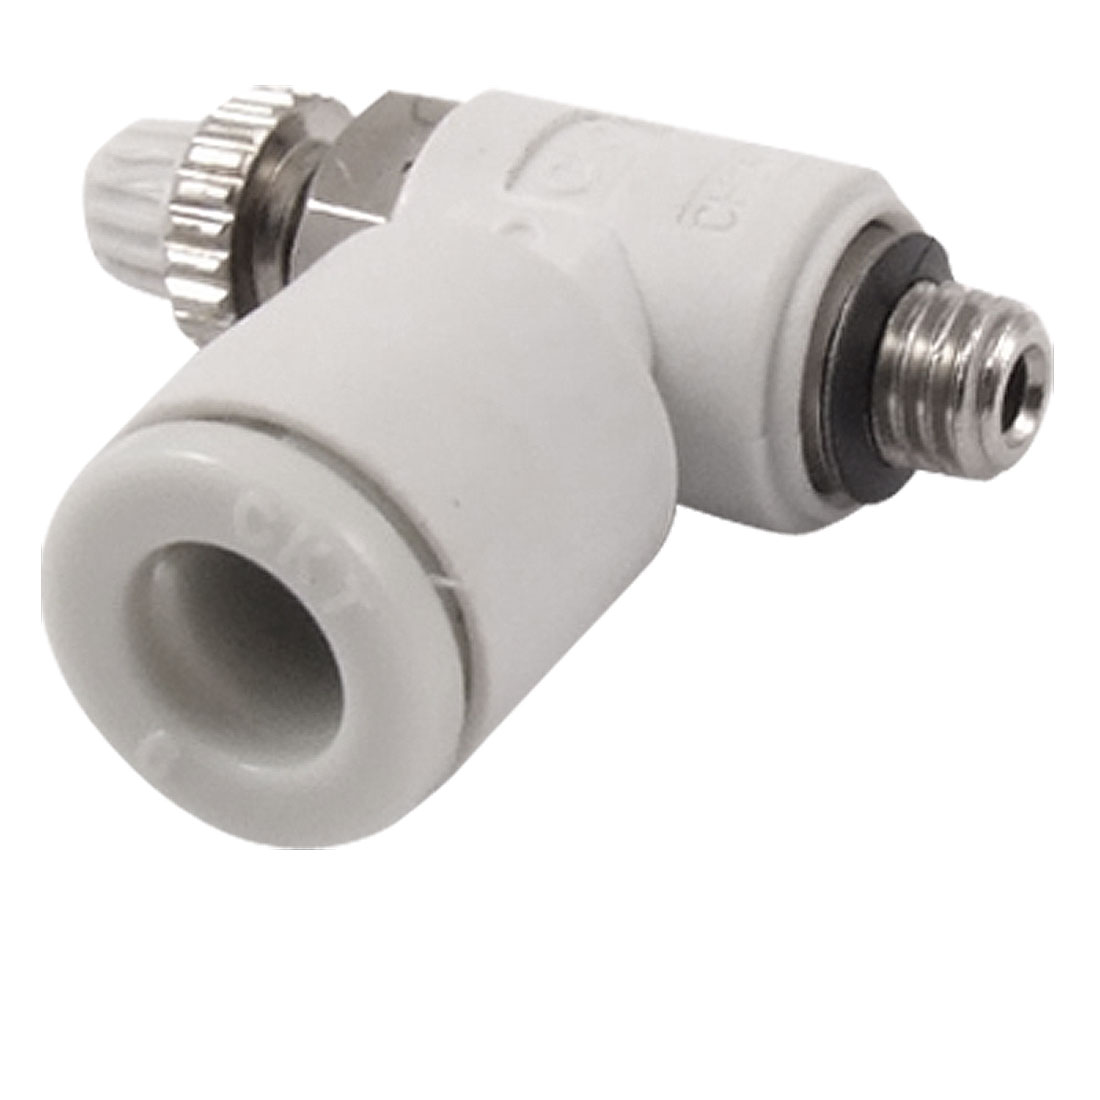 Pneumatic Flow Speed Control 6mm OD Push to Connect M5 Thread Air Valve